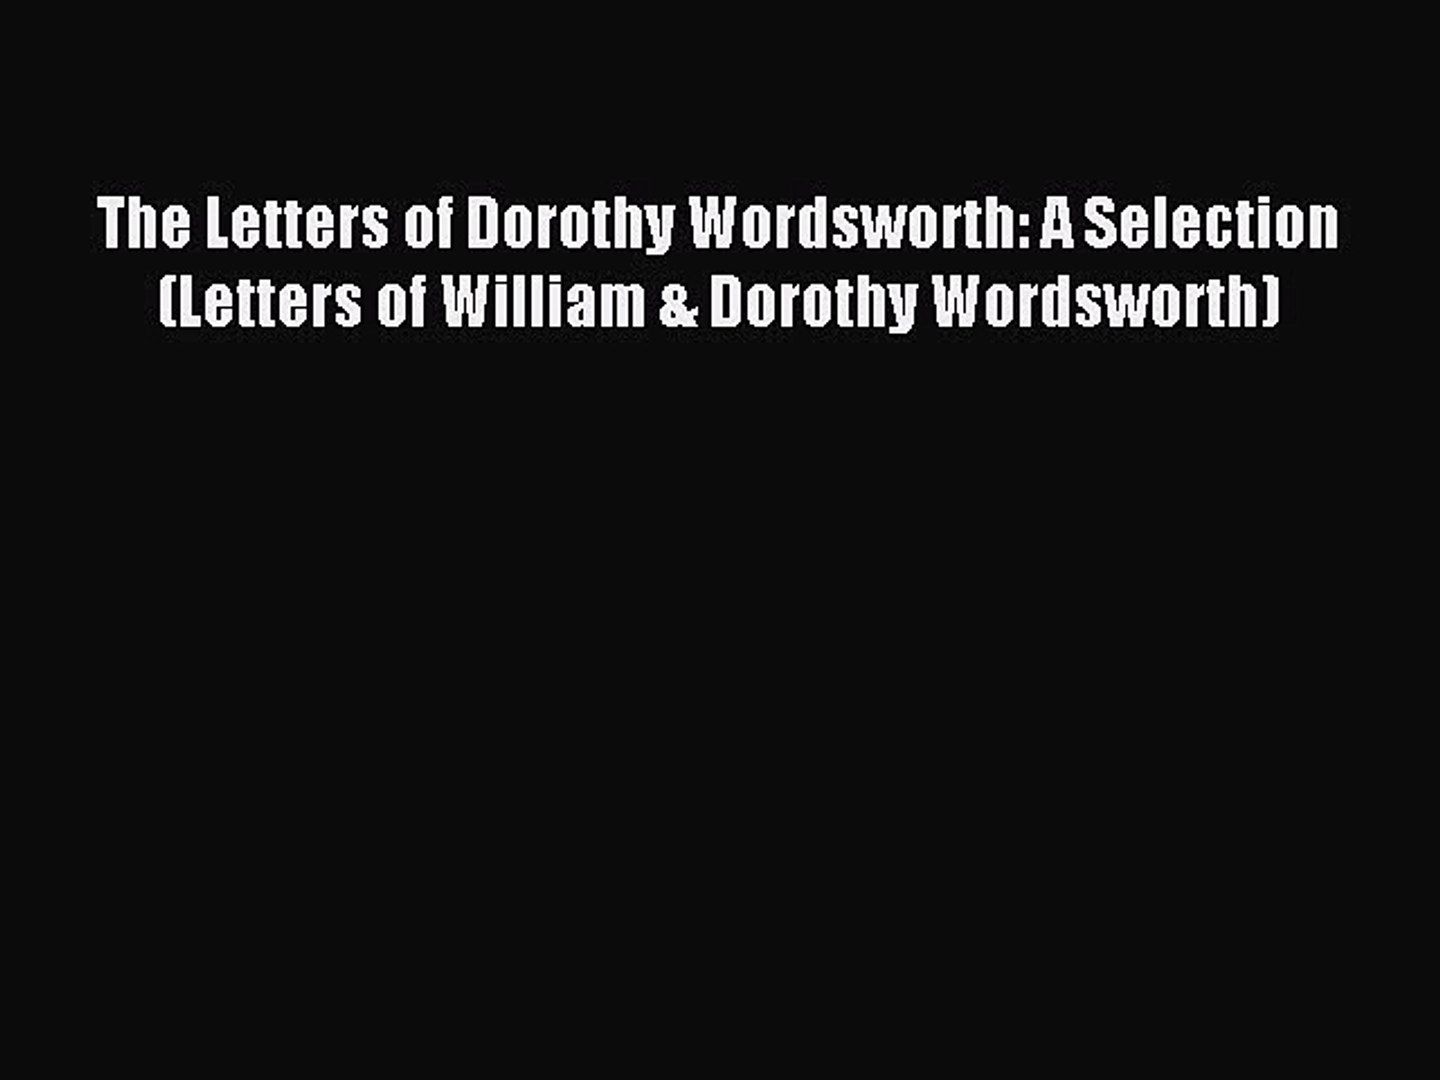 Read The Letters of Dorothy Wordsworth: A Selection (Letters of William & Dorothy Wordsworth)